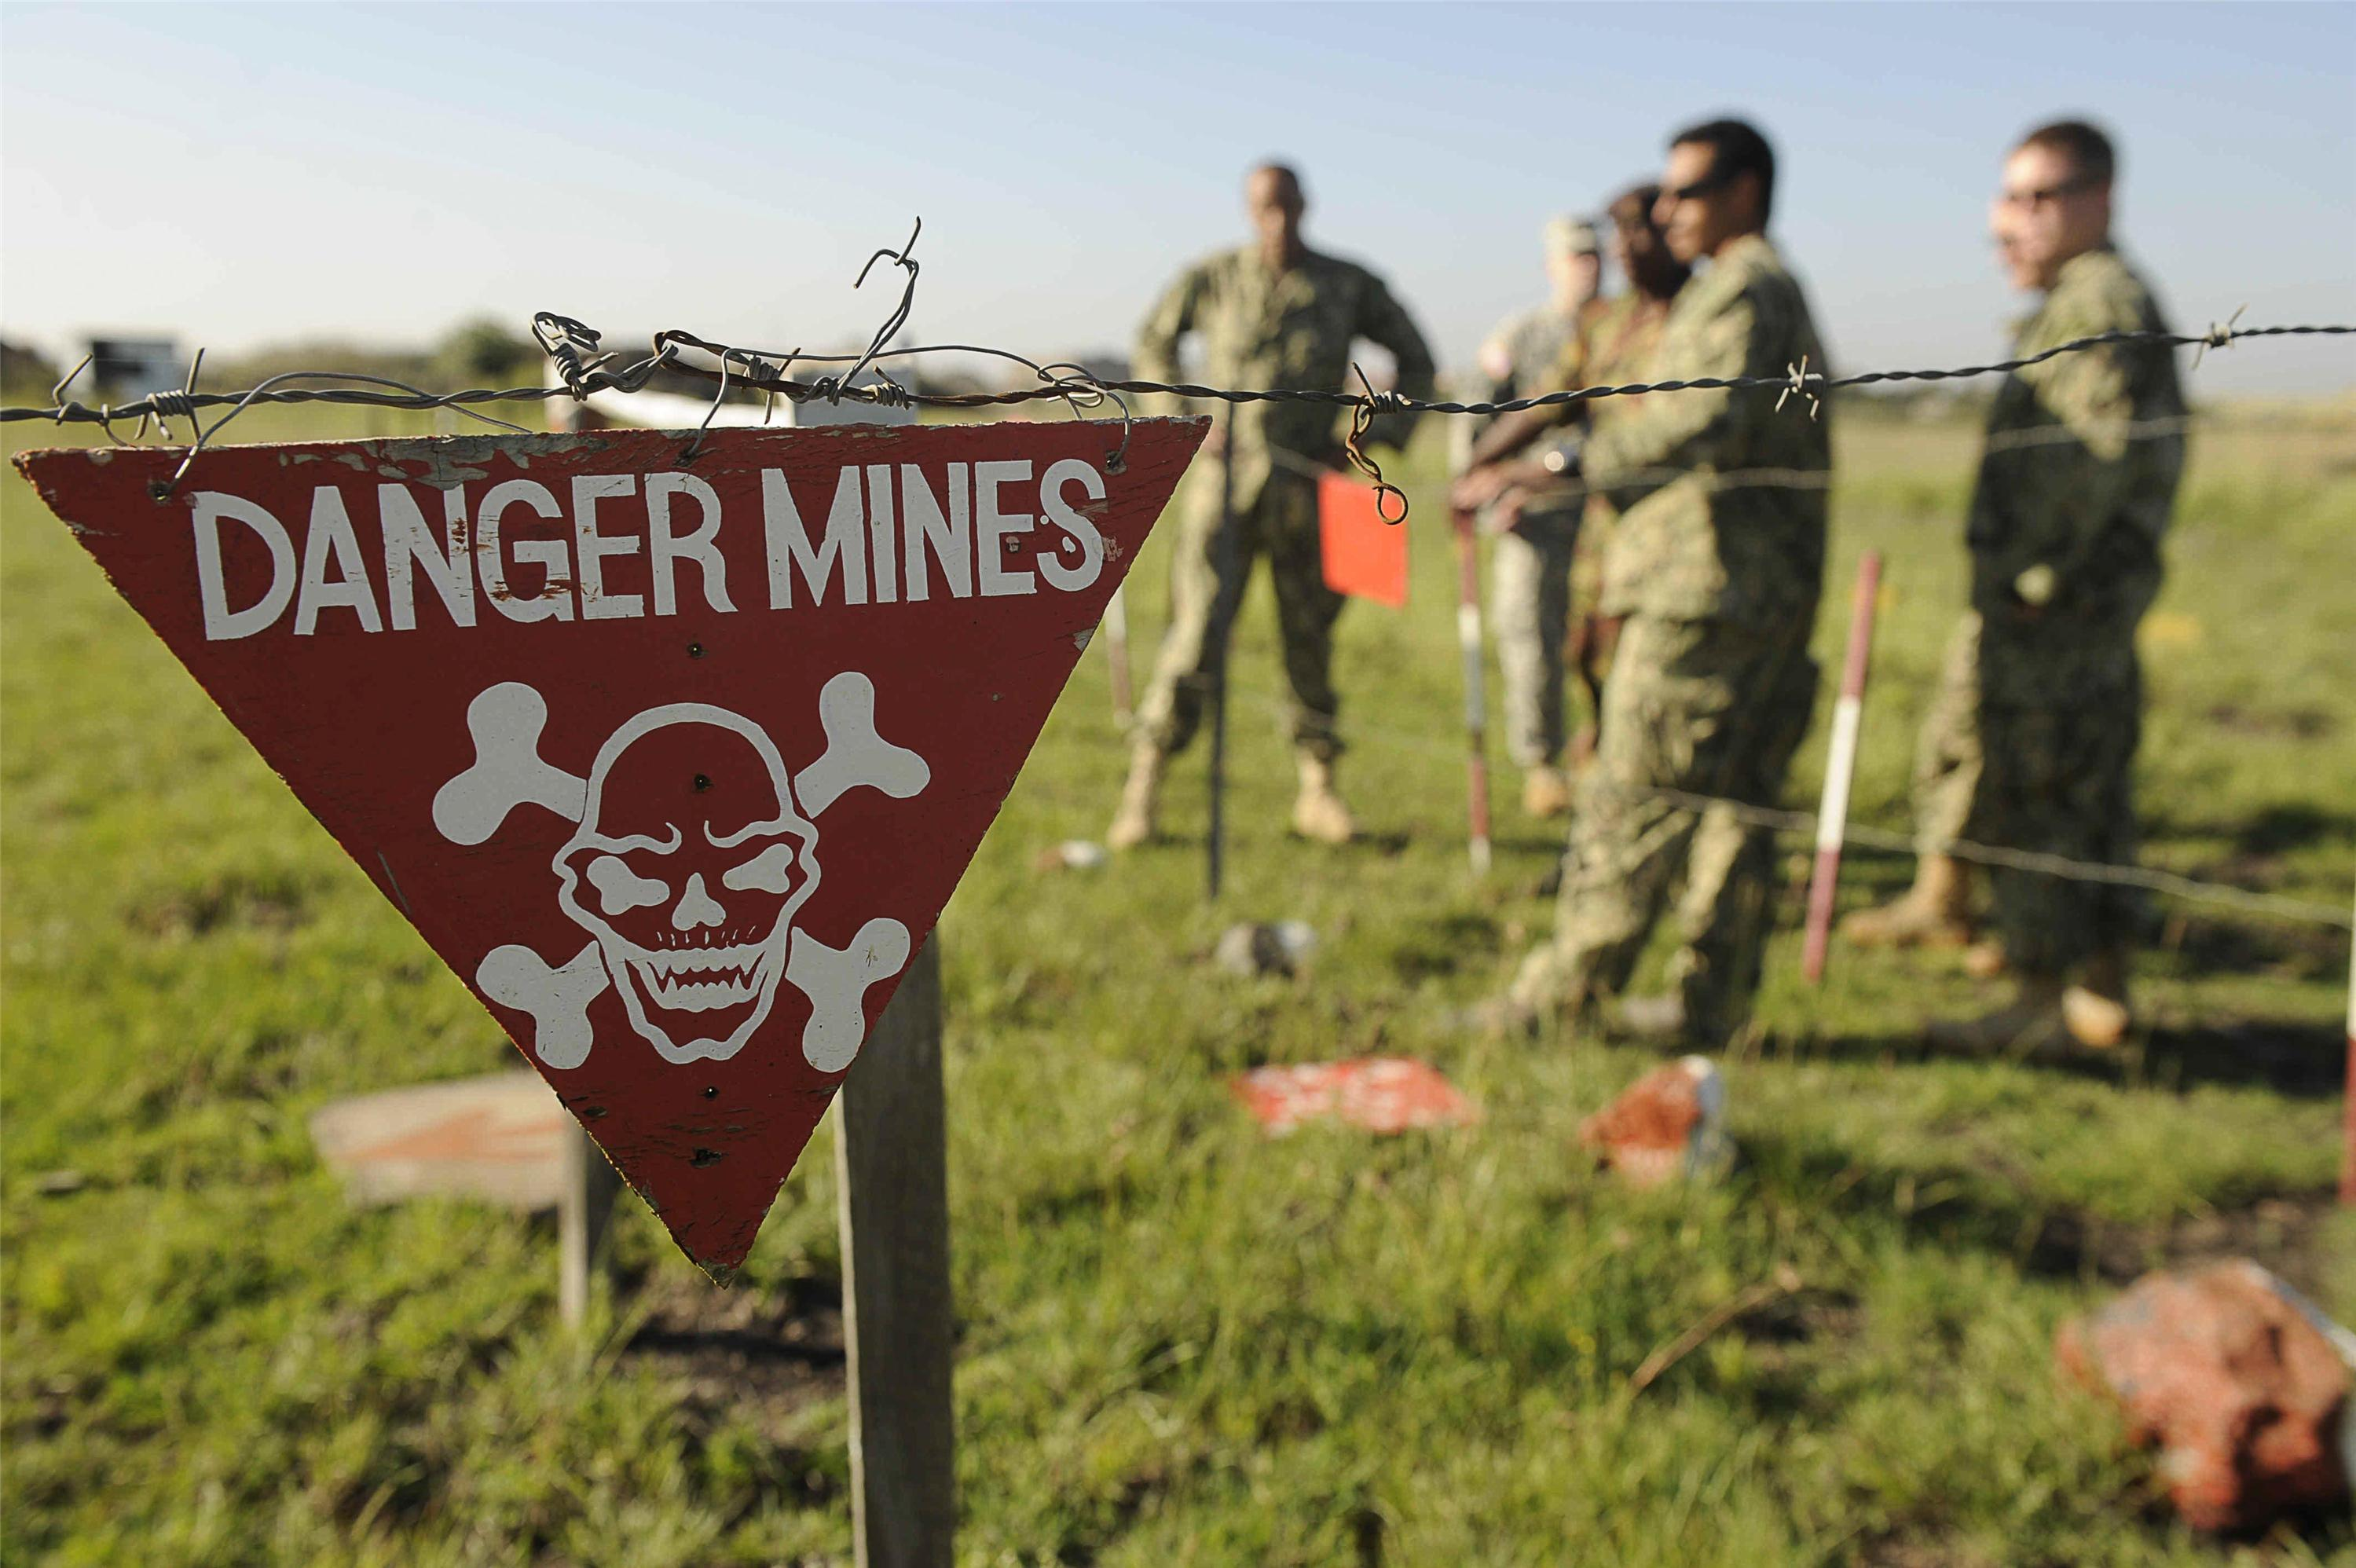 sign warning of landmines with soliders in the background.